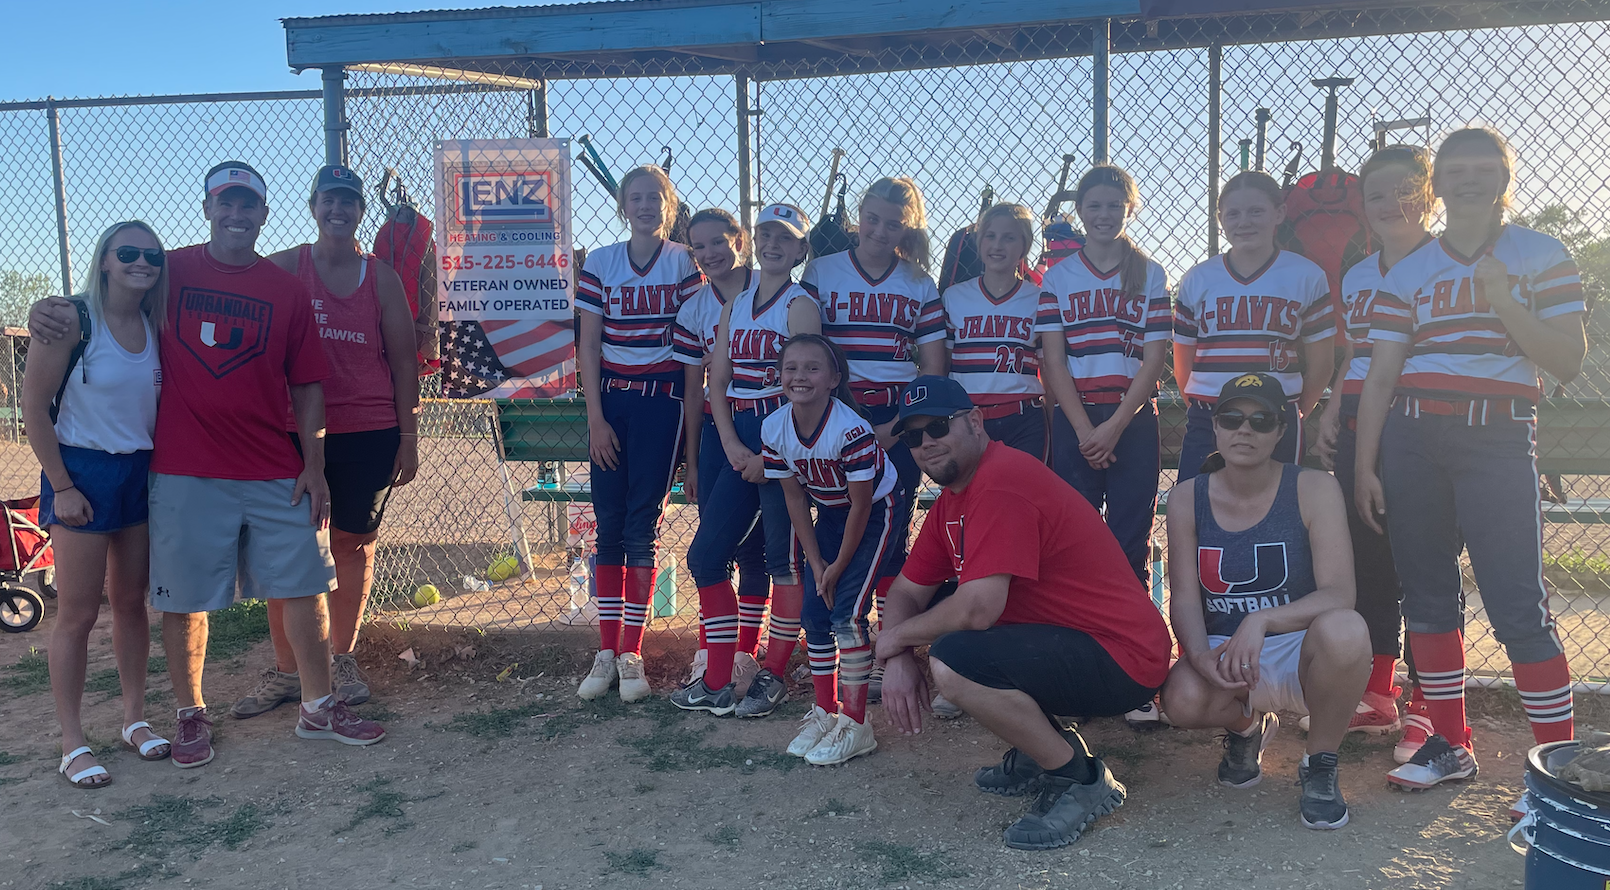 Lenz Heating and Cooling HVAC company Des Moines, Urbandale IA Chamber of Commerce, Creston IA chamber of commerce, Urbandale IA softball